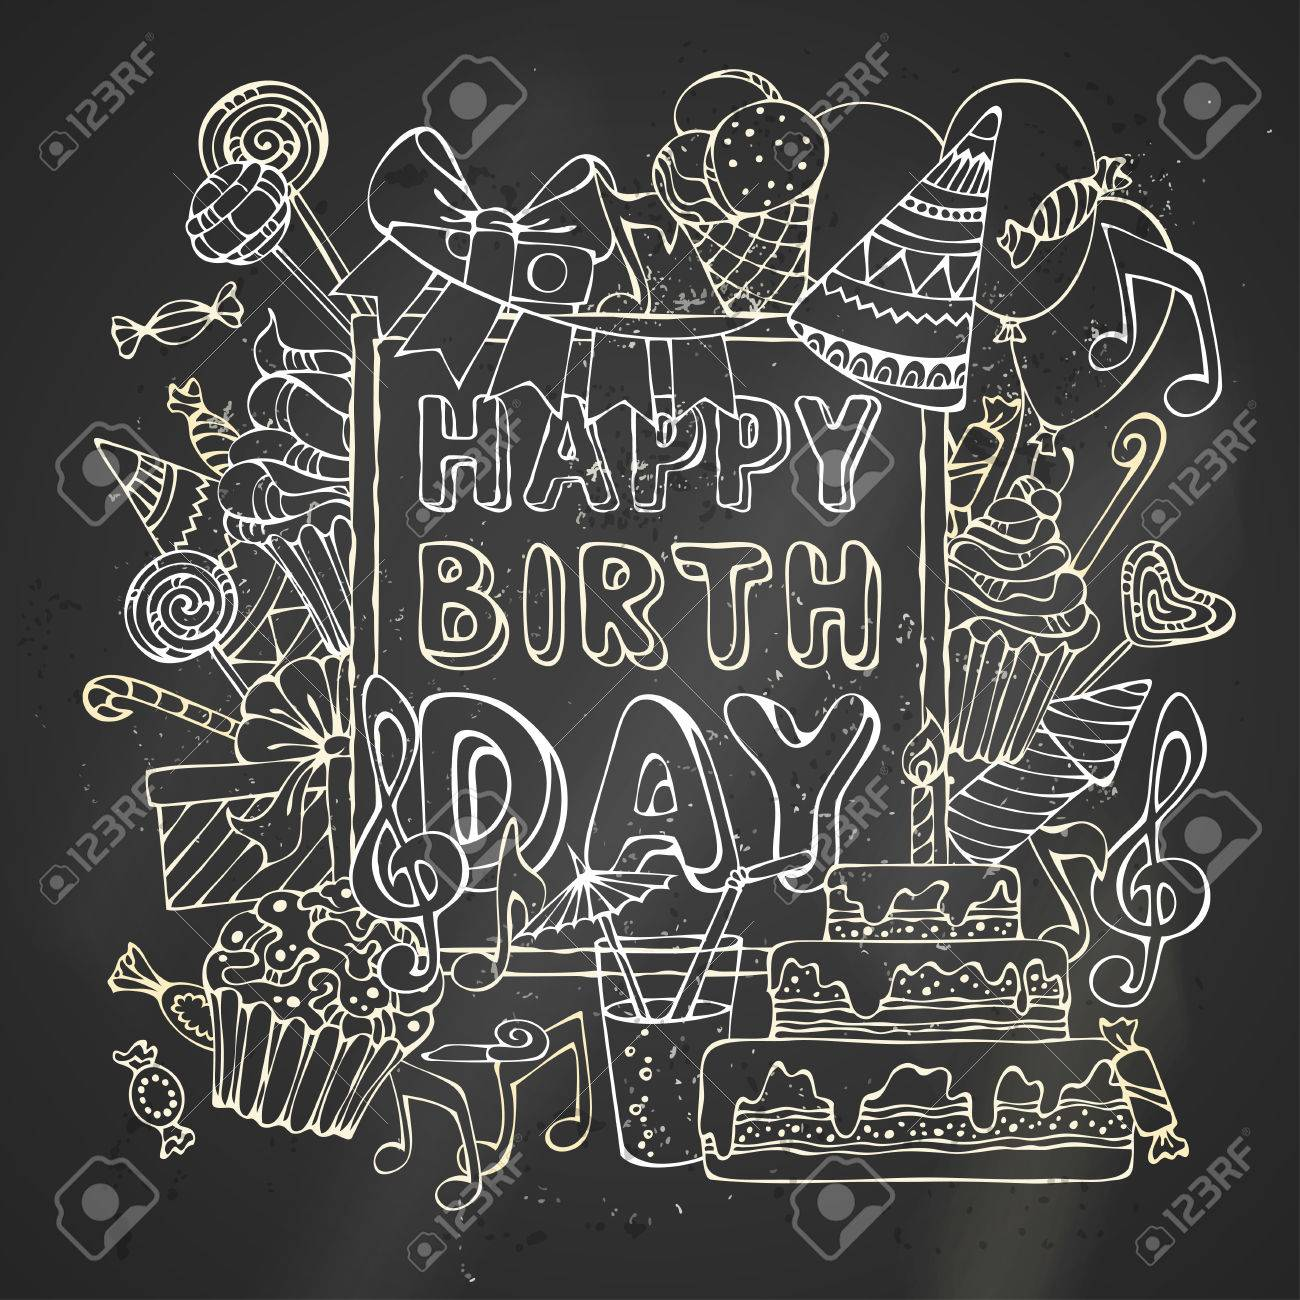 Chalk Happy Birthday Card Hand Drawn Outline Sweets Party Blowouts Hats Gift Boxes And Bows Garlands Balloons Music Notes